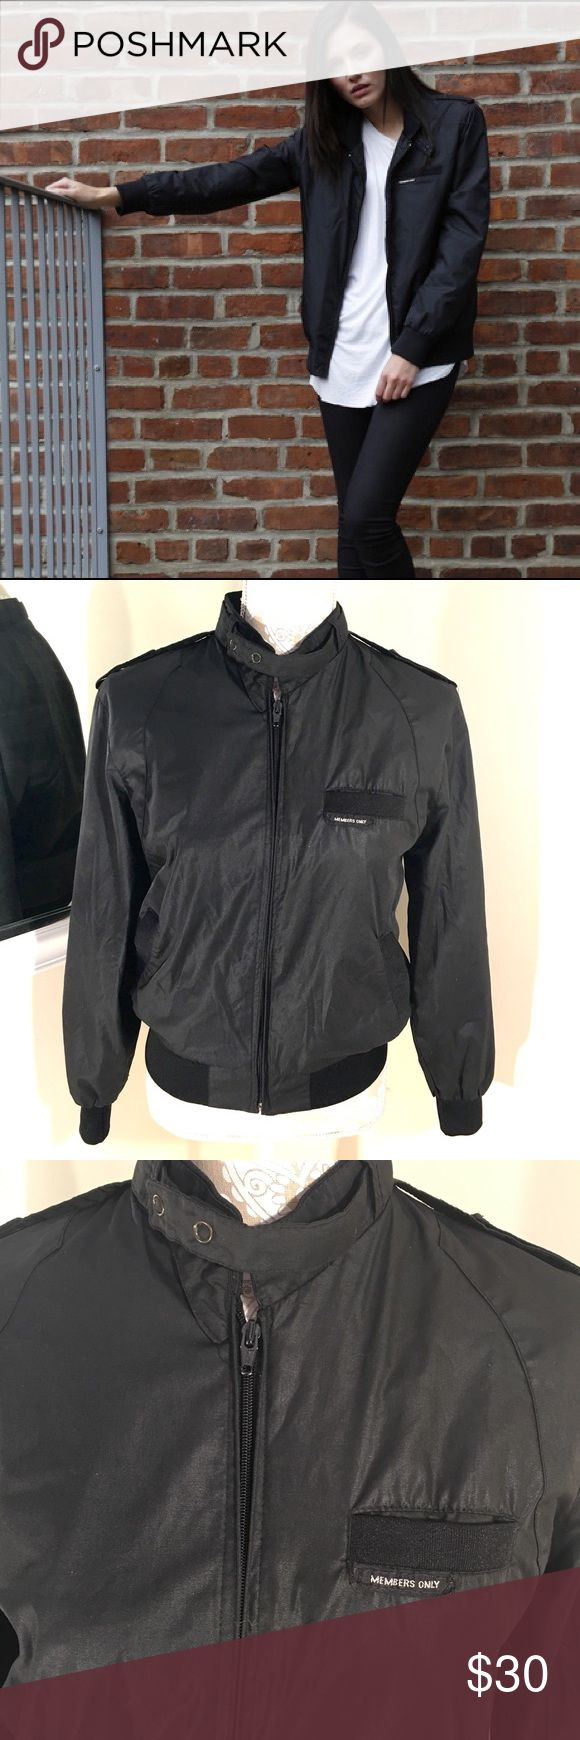 Members Only Iconic Jacket Classic iconic racer. A classic never goes out of style. Double snap iconic throat latch. Signature shoulder epaulettes and trademark front logo pocket. Polyester cotton blend . Good condition. Size is 34. Women's small. Black Jackets & Coats Utility Jackets